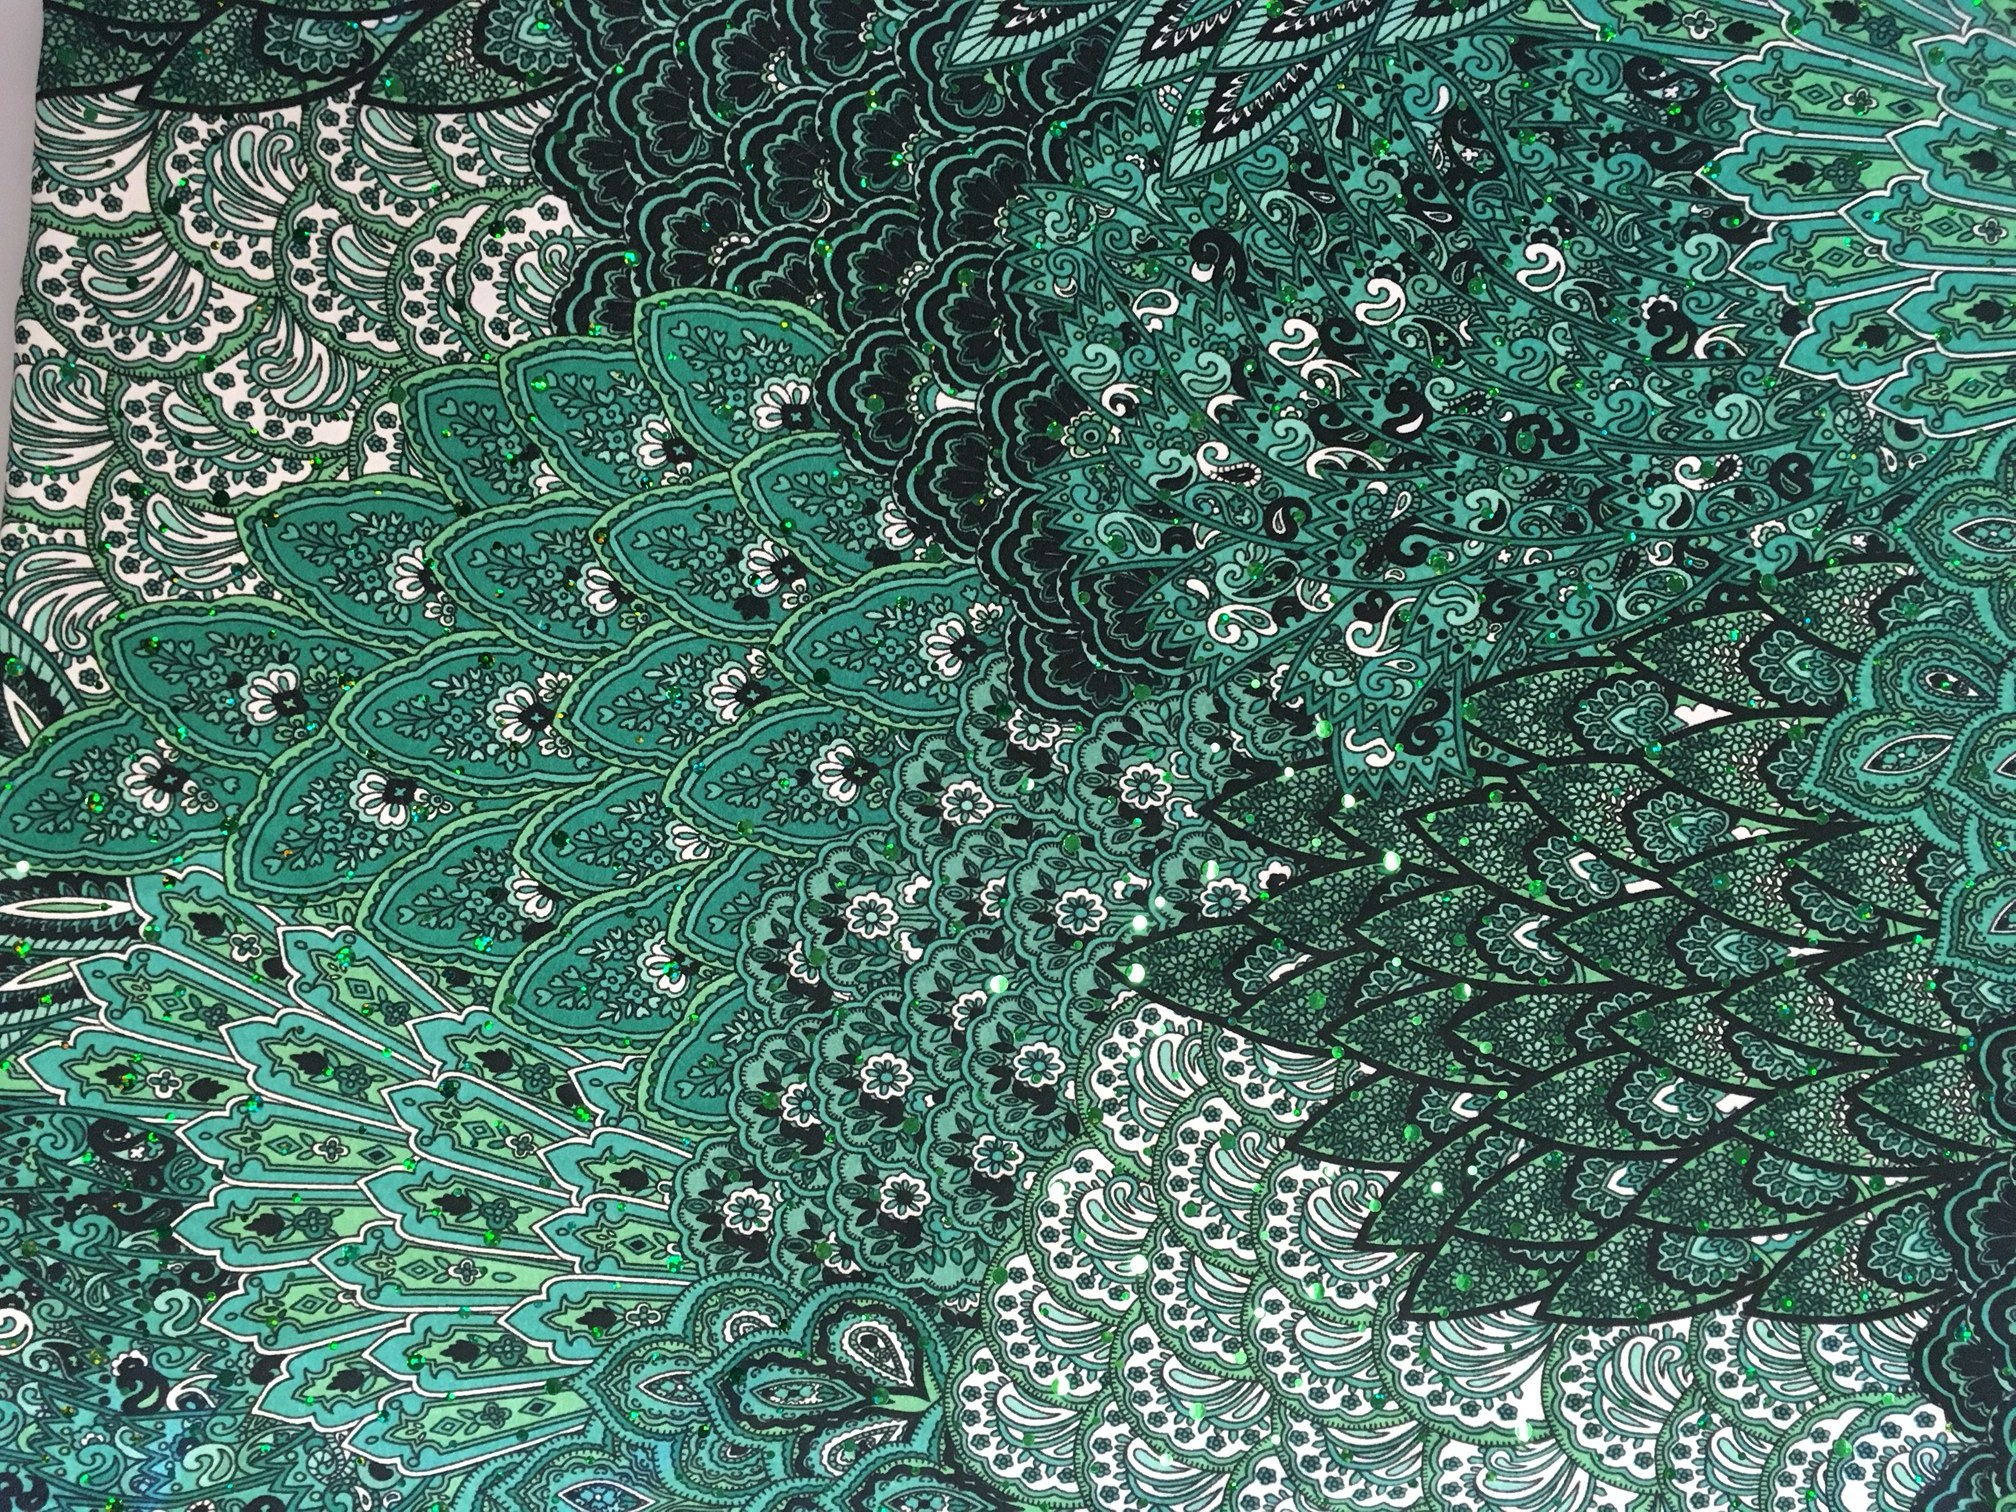 Emerald City (Last Call! Holographic sequins)